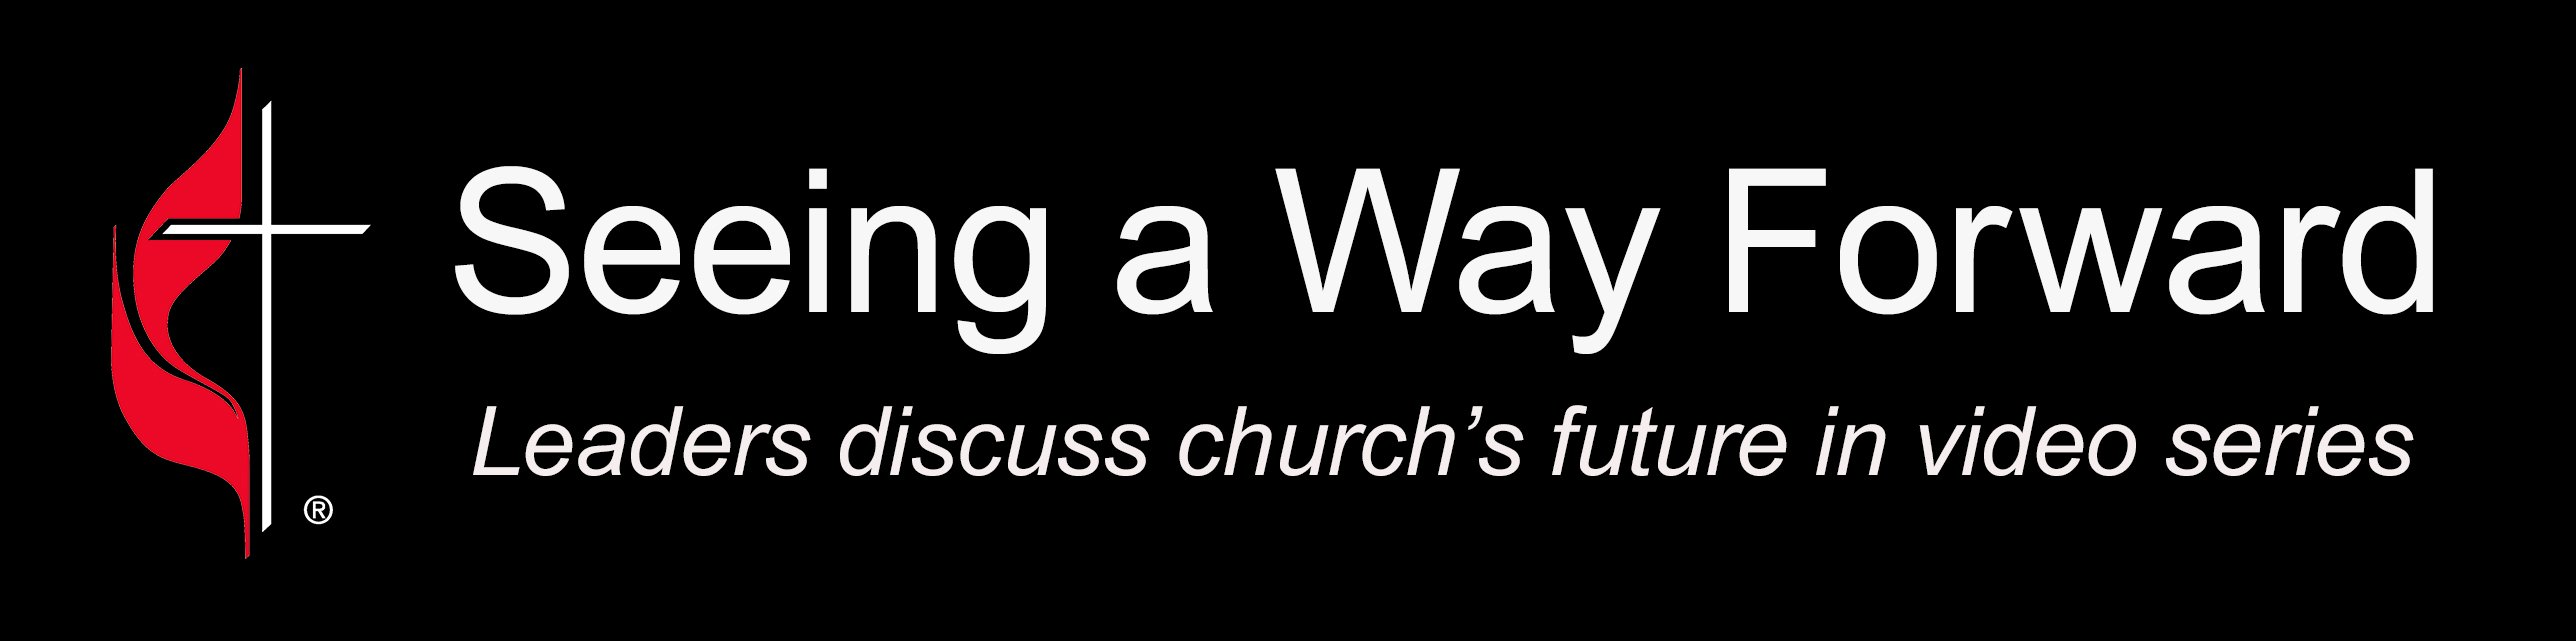 """Seeing a Way Forward""is  a video series featuring different perspectives of church leaders on the work of the Commission on a Way Forward. Video image courtesy of United Methodist News Service."